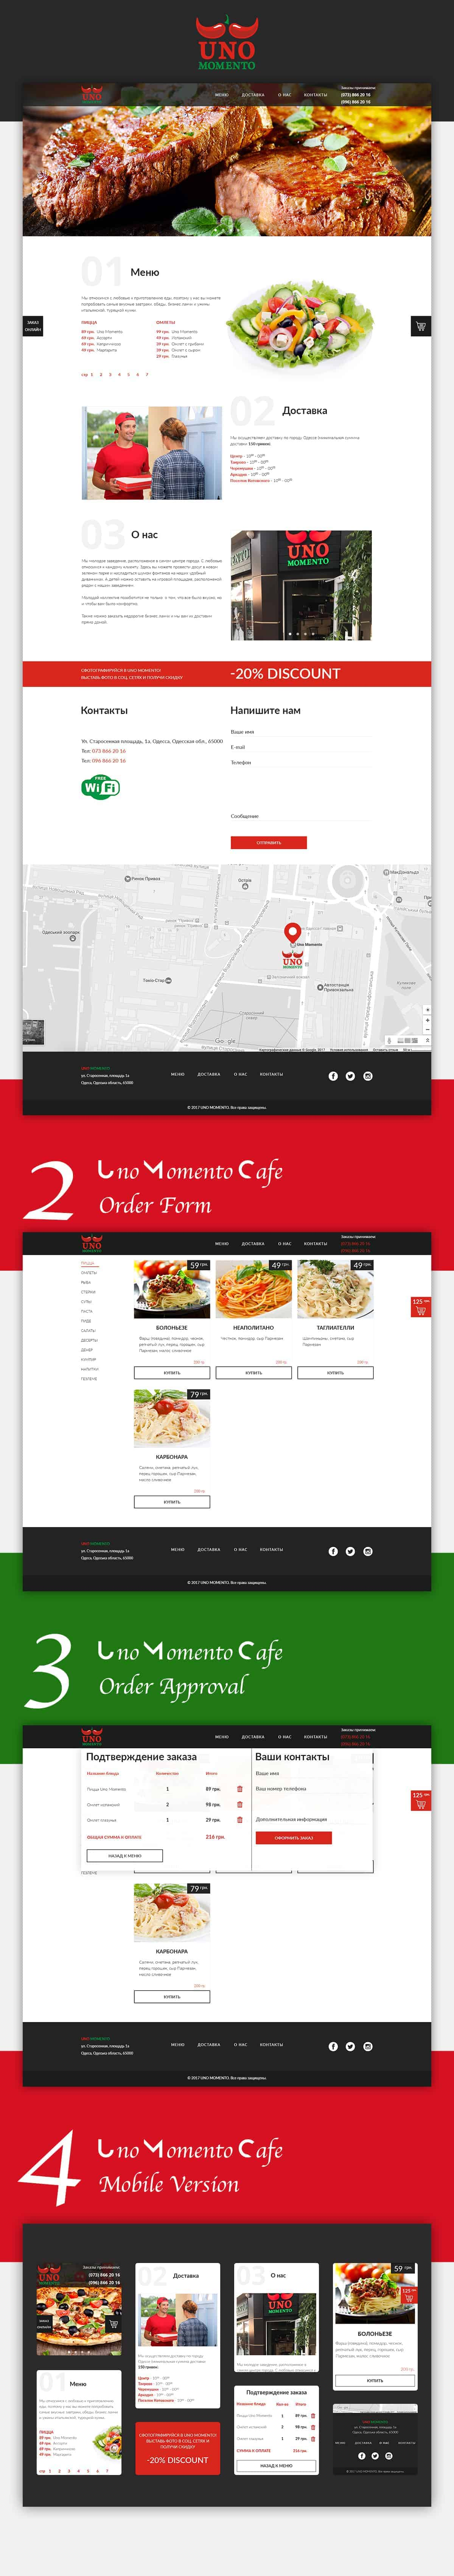 Uno Momento Cafe Website - Design Ideas on order flow, order template, order number, order book, order symbol, order from walmart, order time, order letter, order of service, order of reaction, order button, order sheet, order now, order paper, order list, order of the spur certificate, order of byte sizes, order processing, order pad, order management,